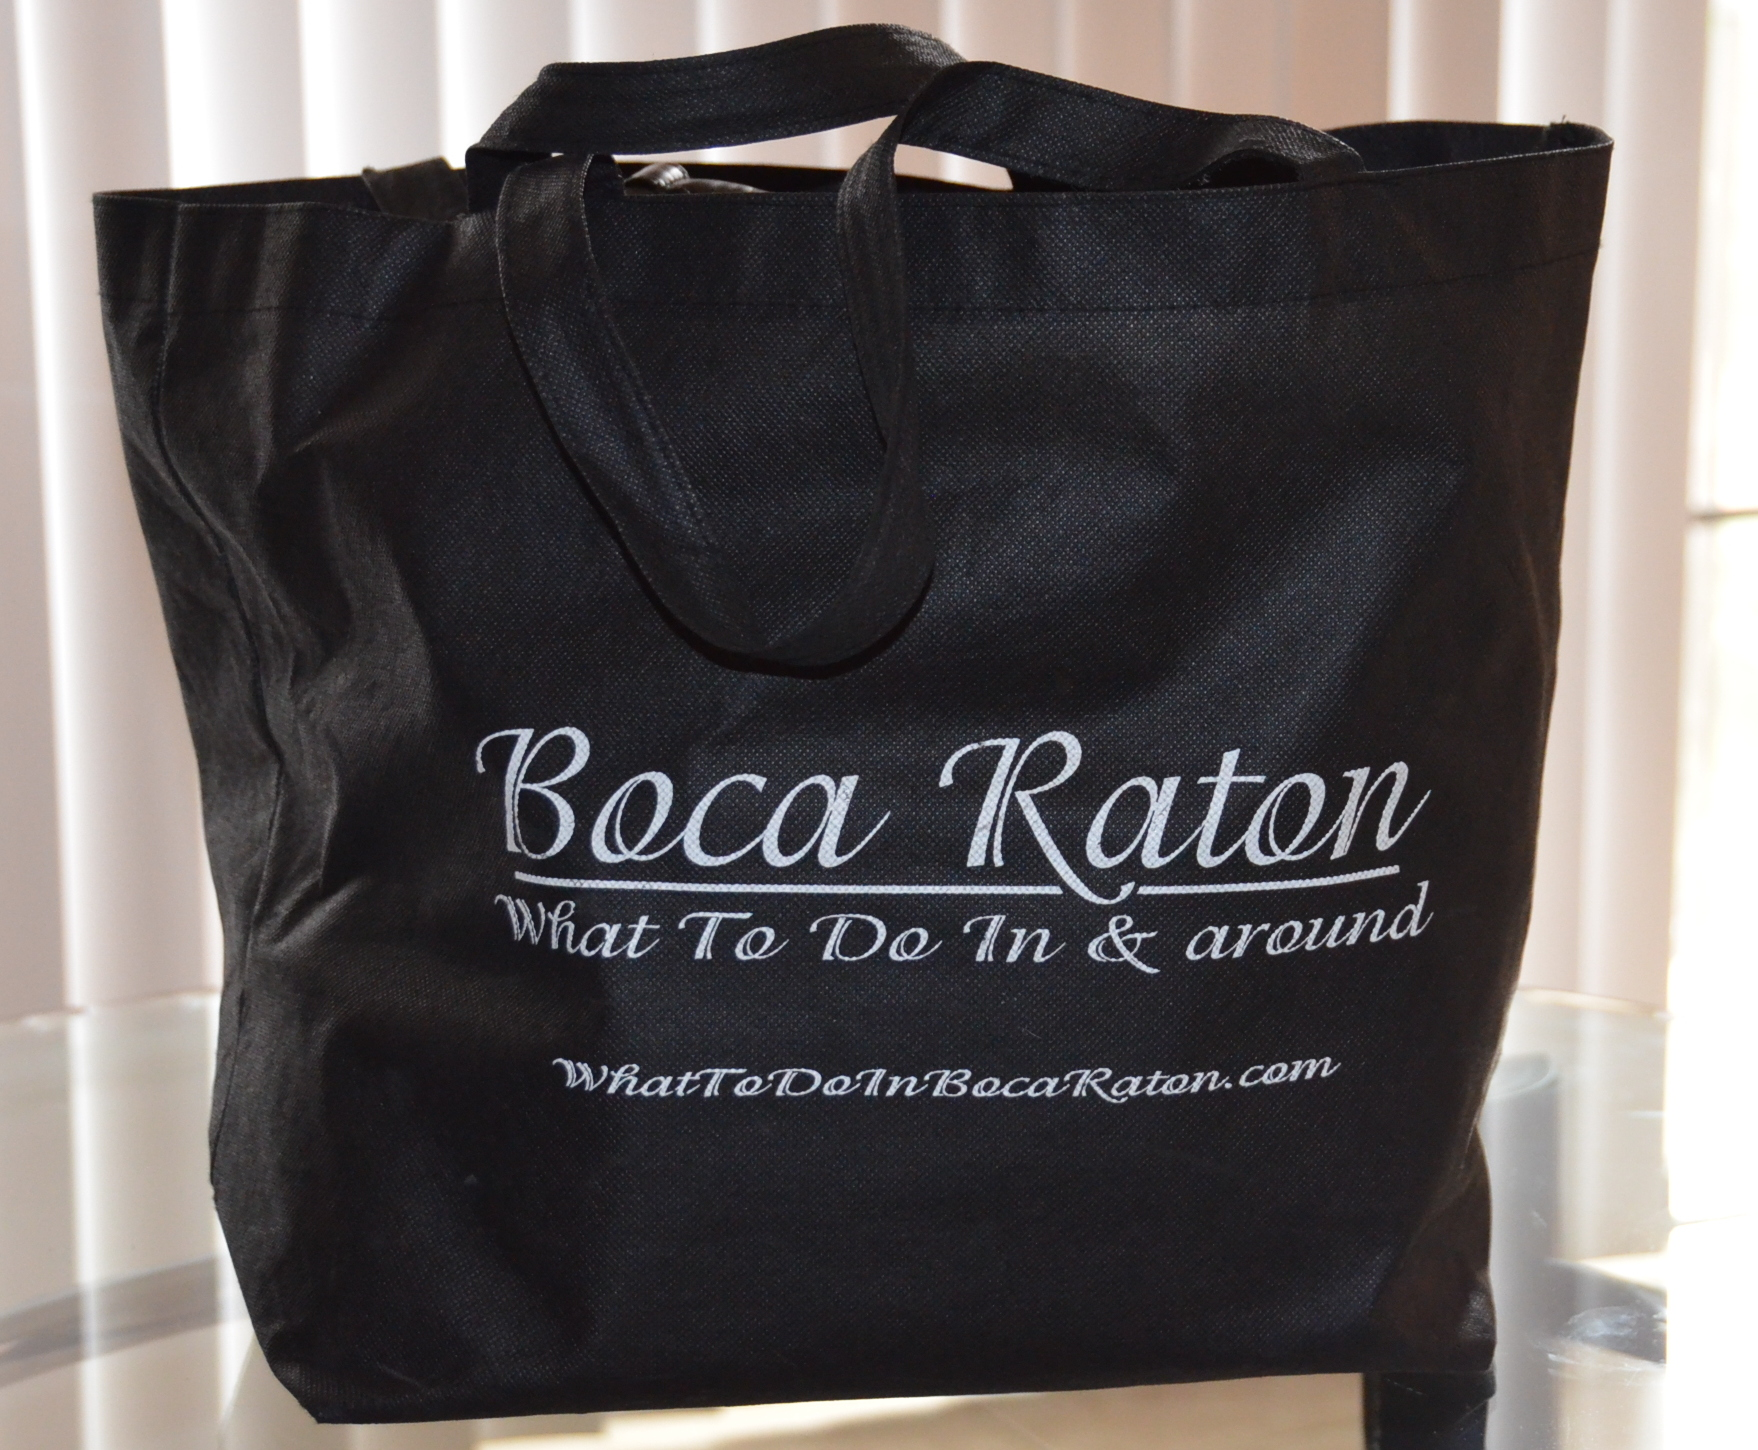 Promotional Bags Get Your Logo Seen Everywhere